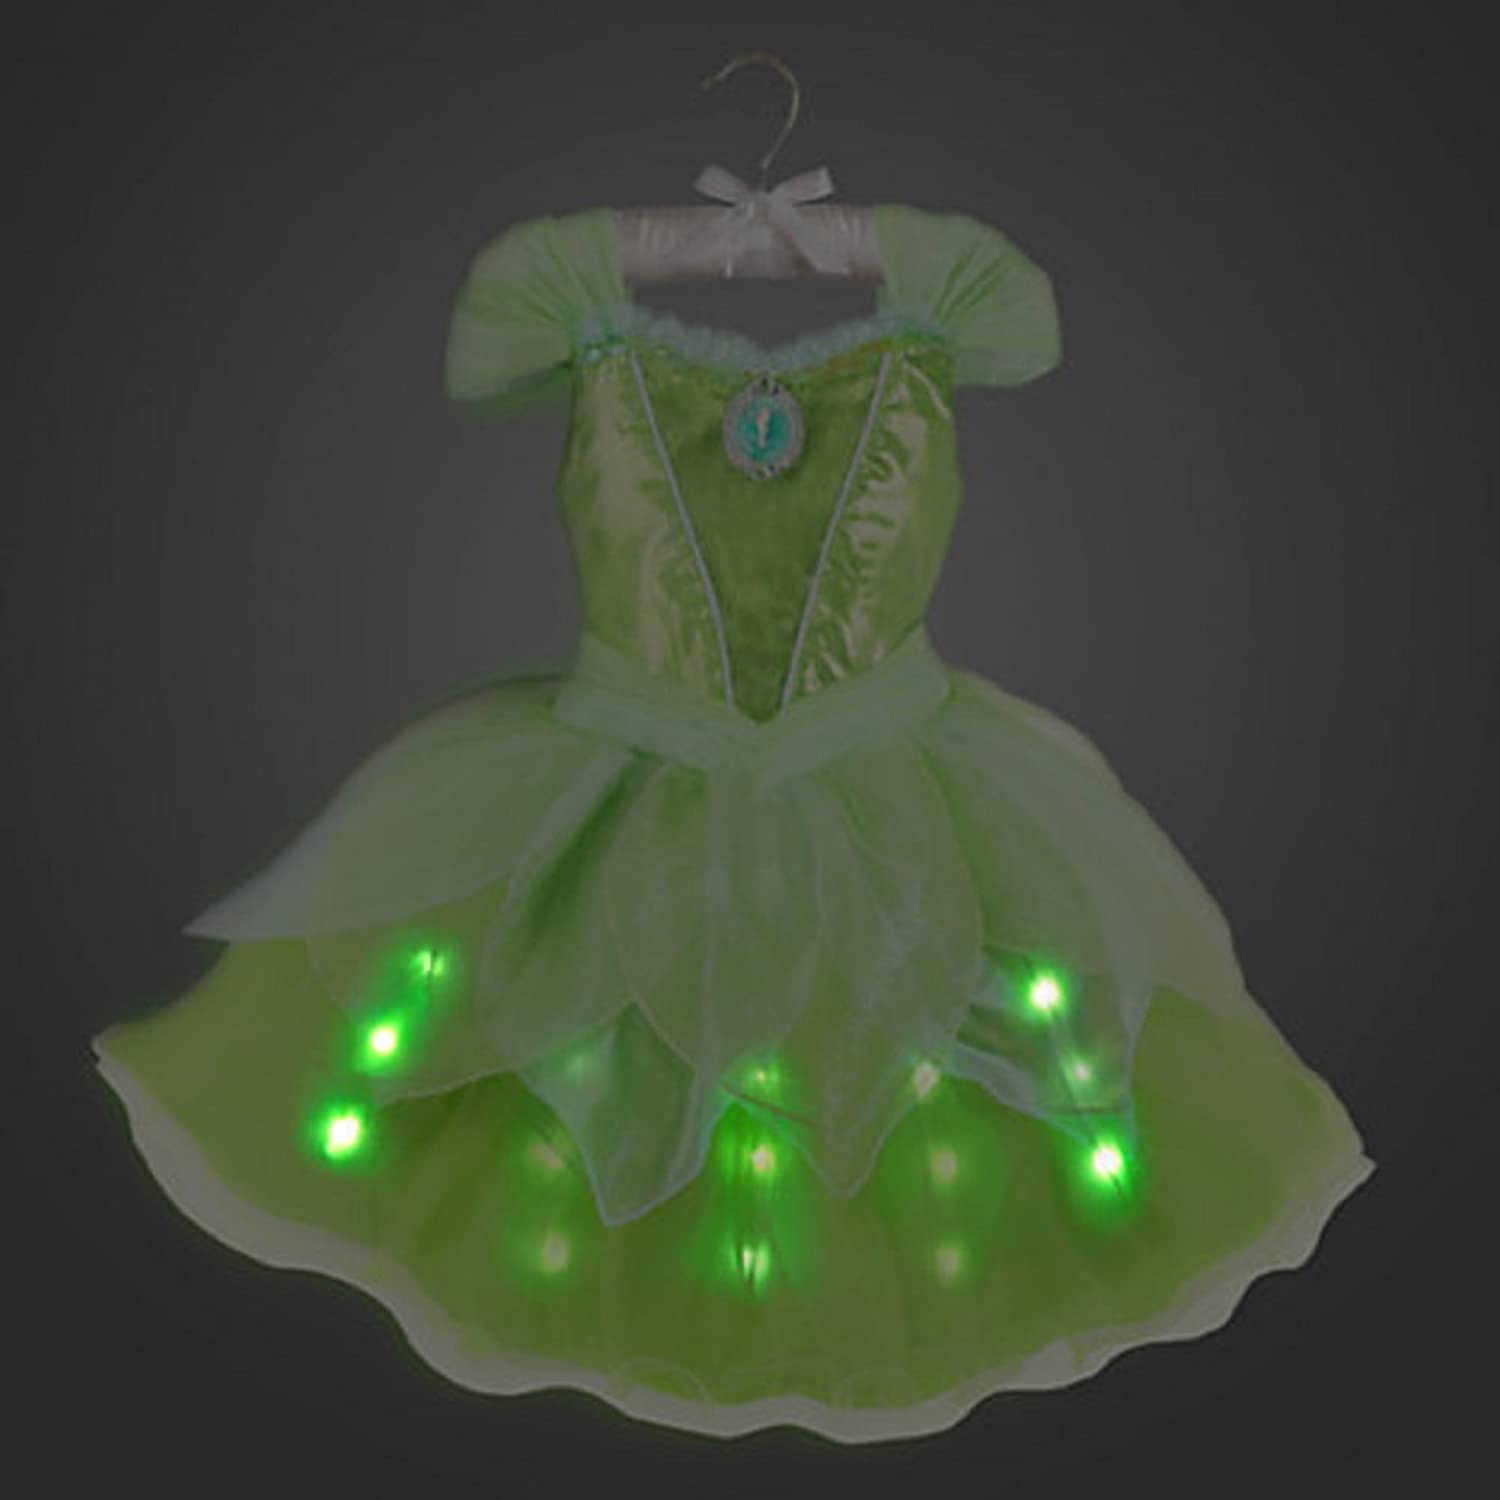 Amazon.com: DISNEY STORE TINKER BELL TINKERBELL LIGHT-UP COSTUME ...